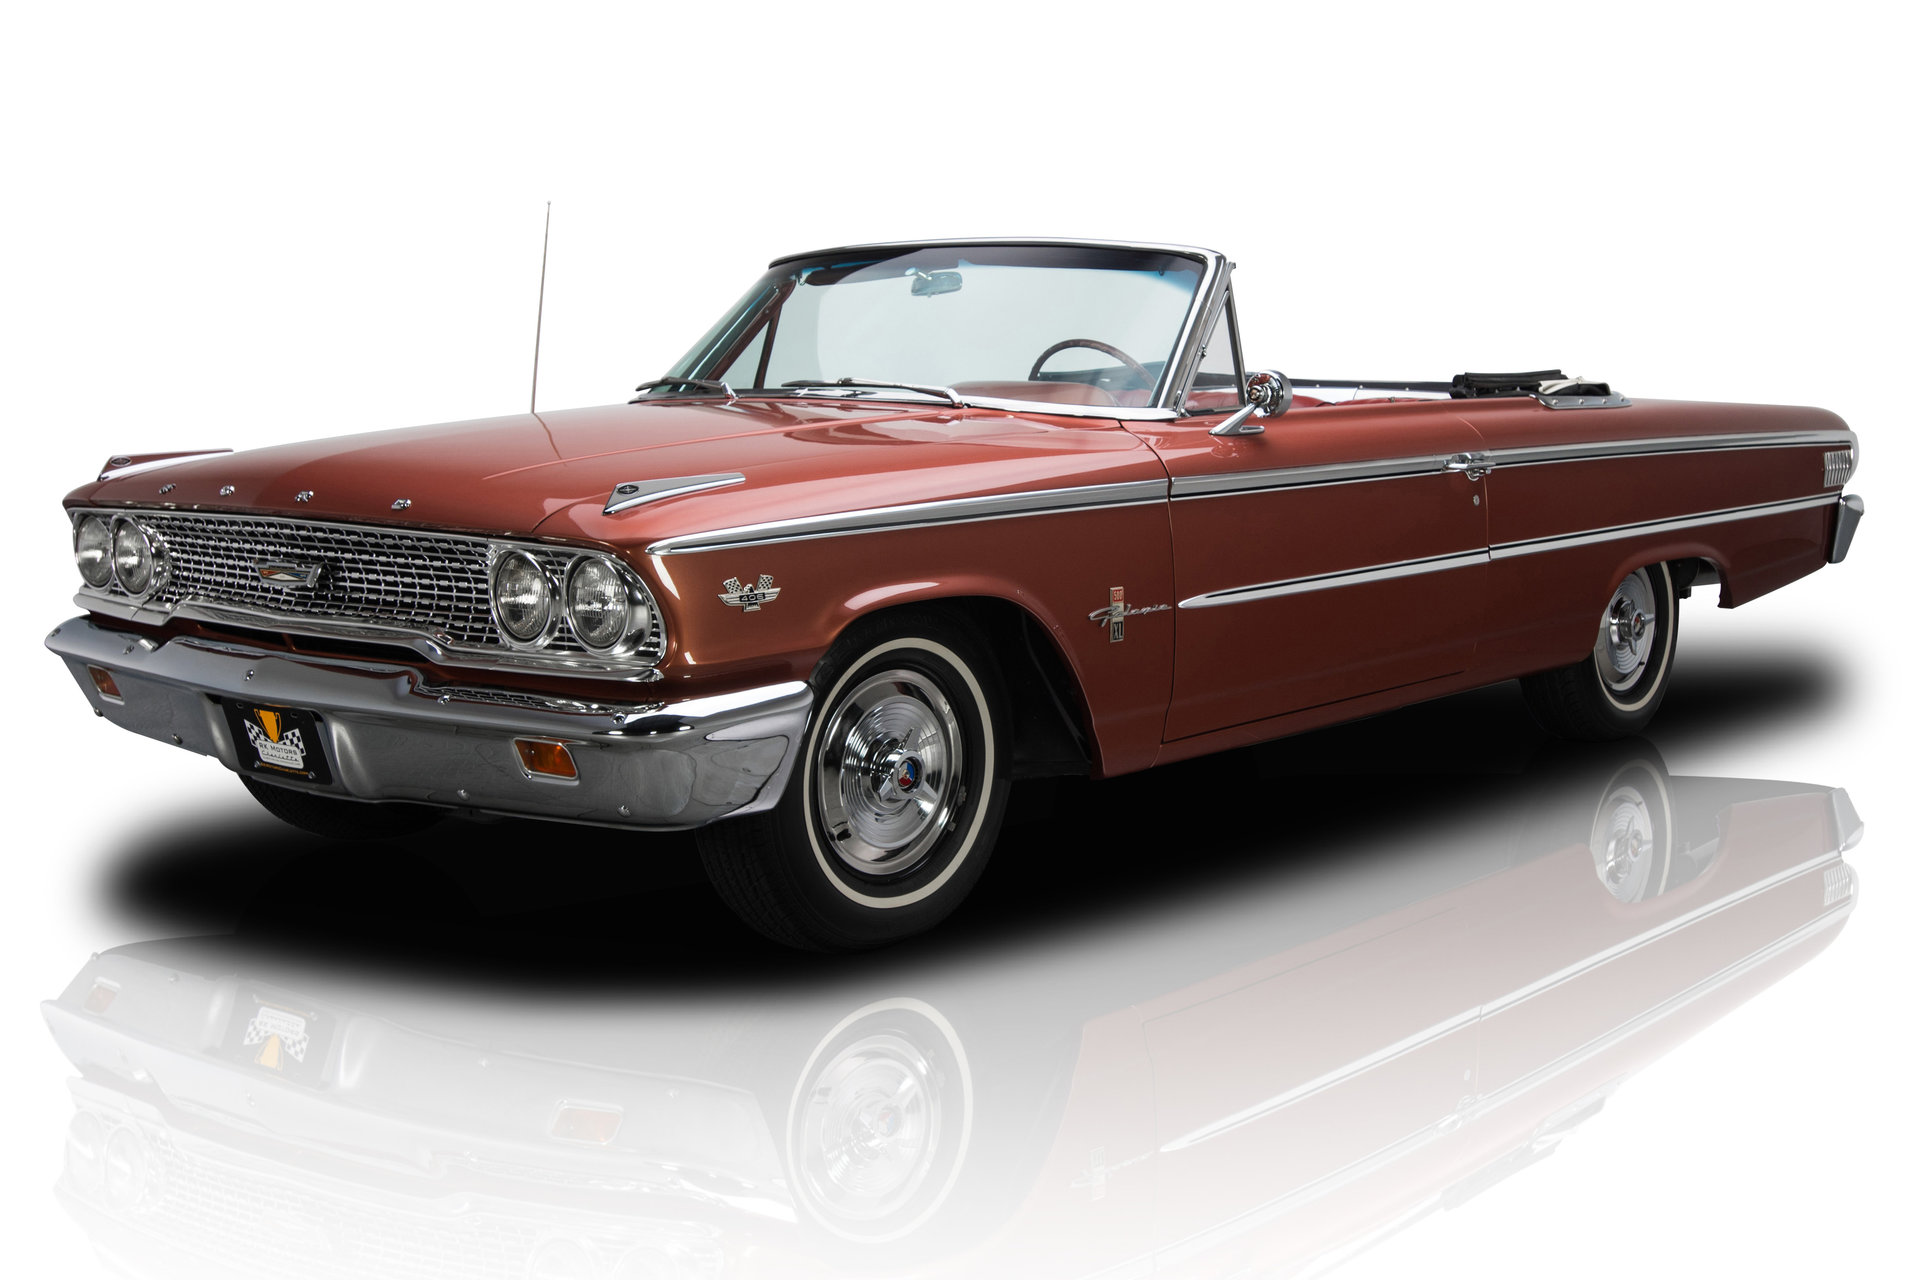 135049 1963 Ford Galaxie Rk Motors Classic Cars For Sale 1964 Rear End Codes Restored 500xl Convertible G Code 406 405 Hp Tri Power V8 4 Speed Pb